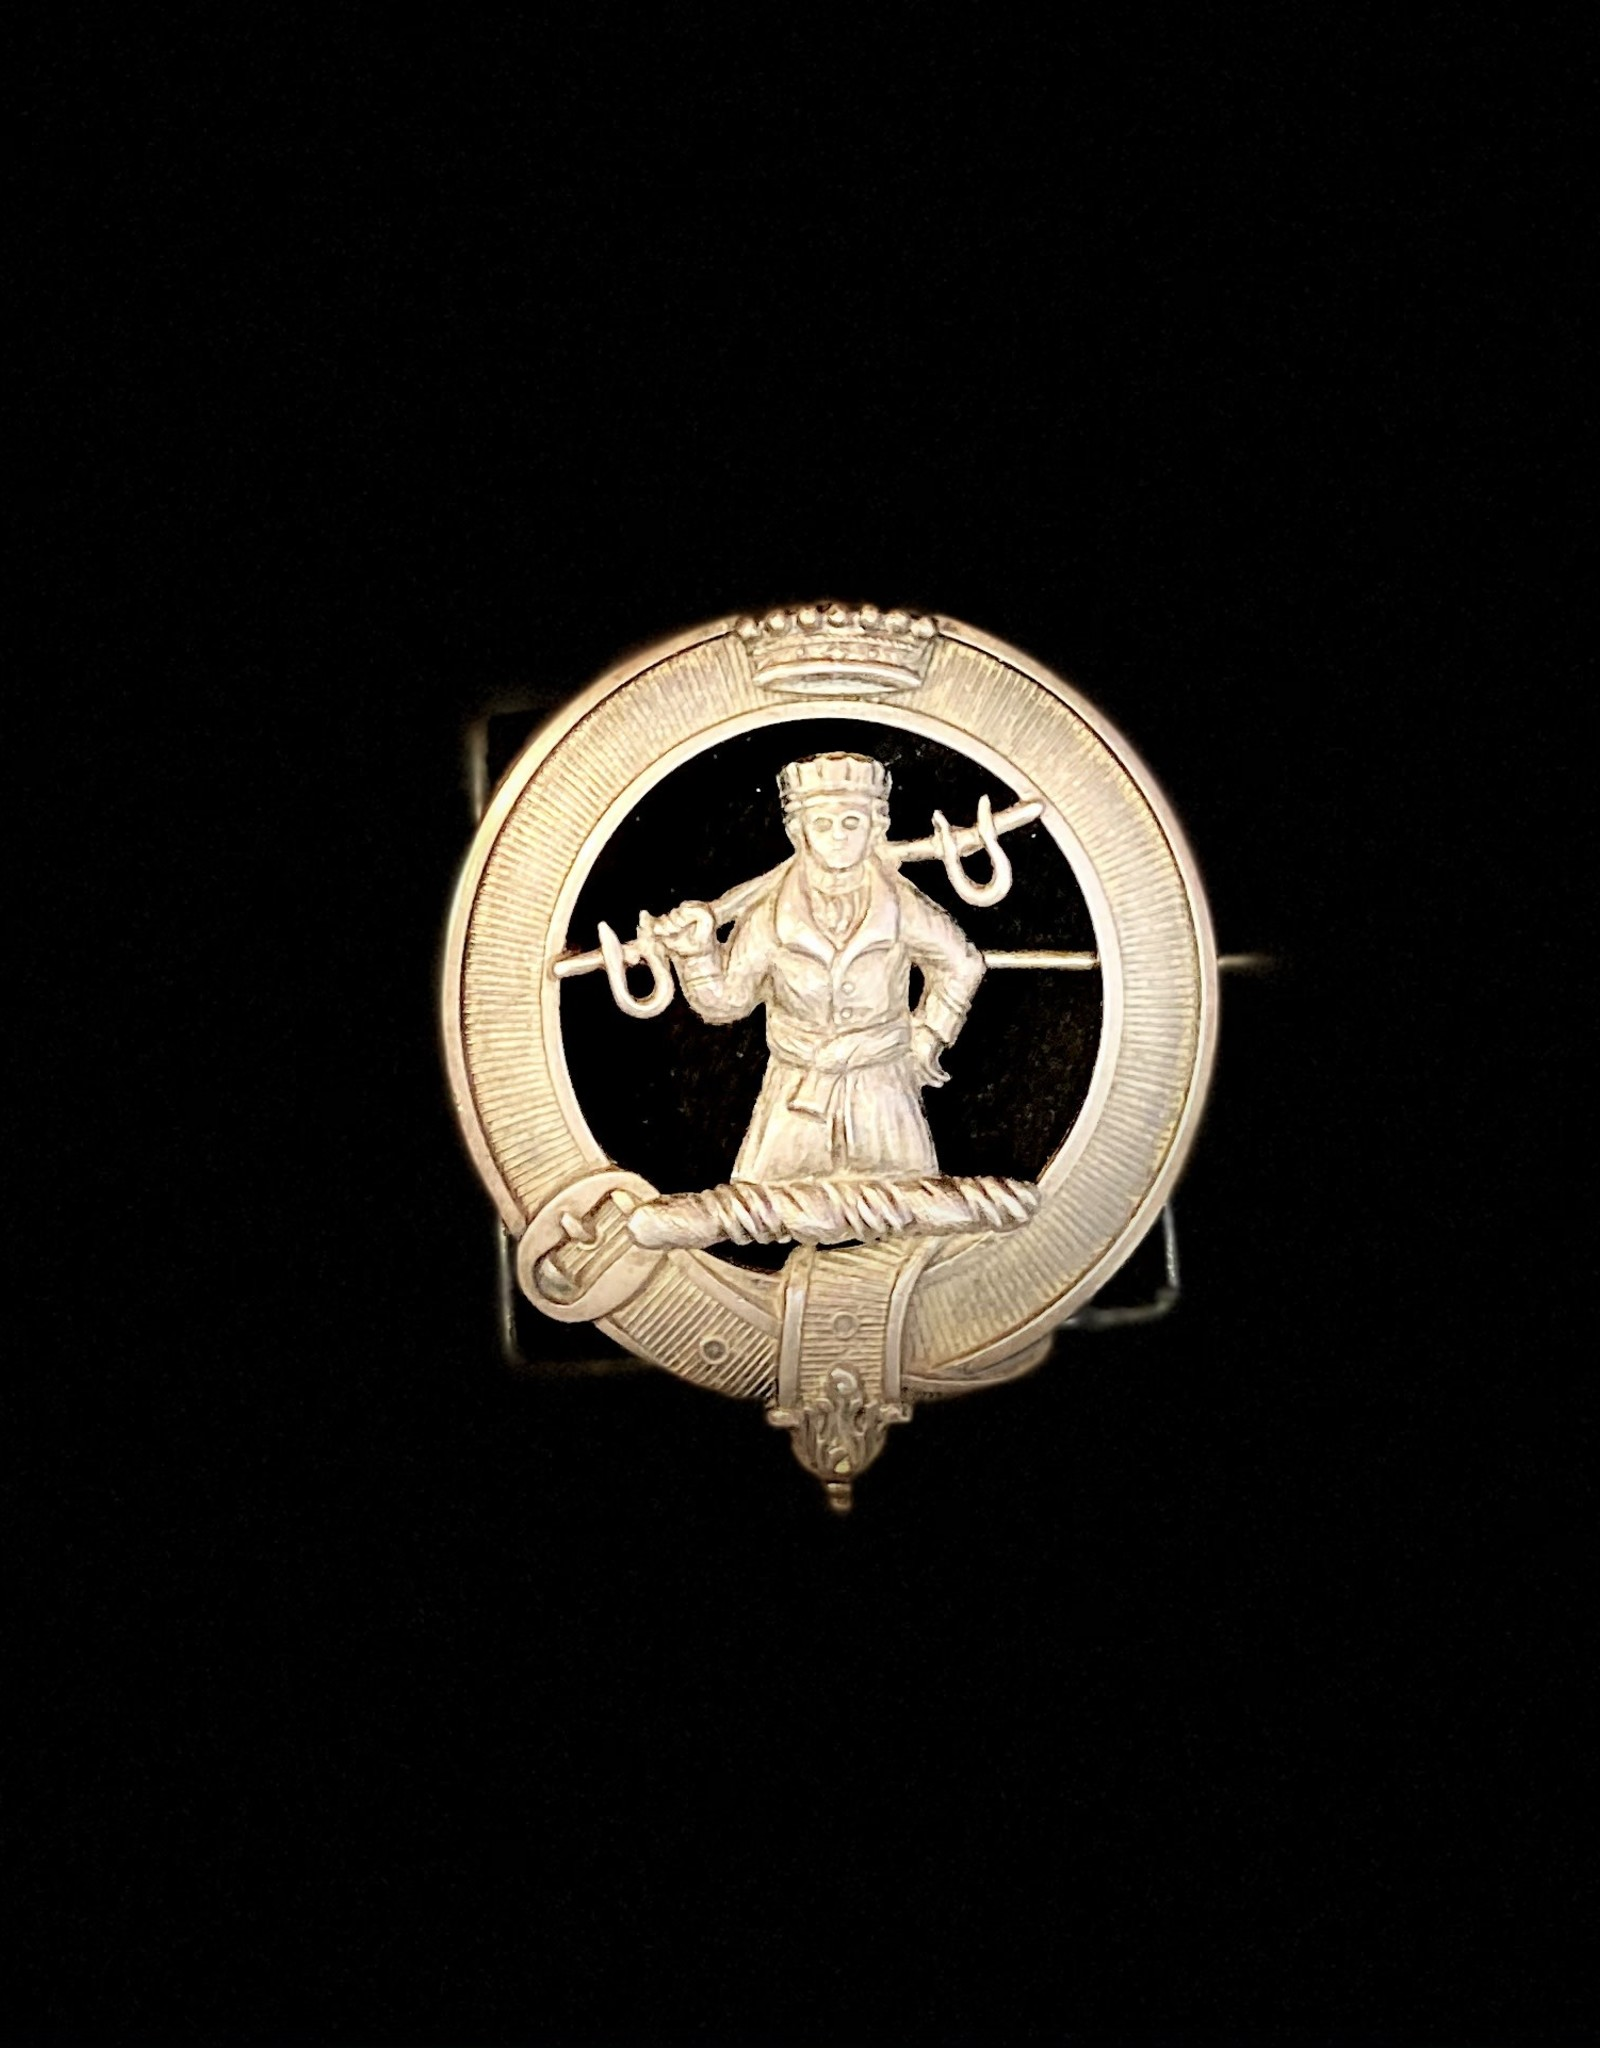 Handworked Silver Broach 1800s King/Knight